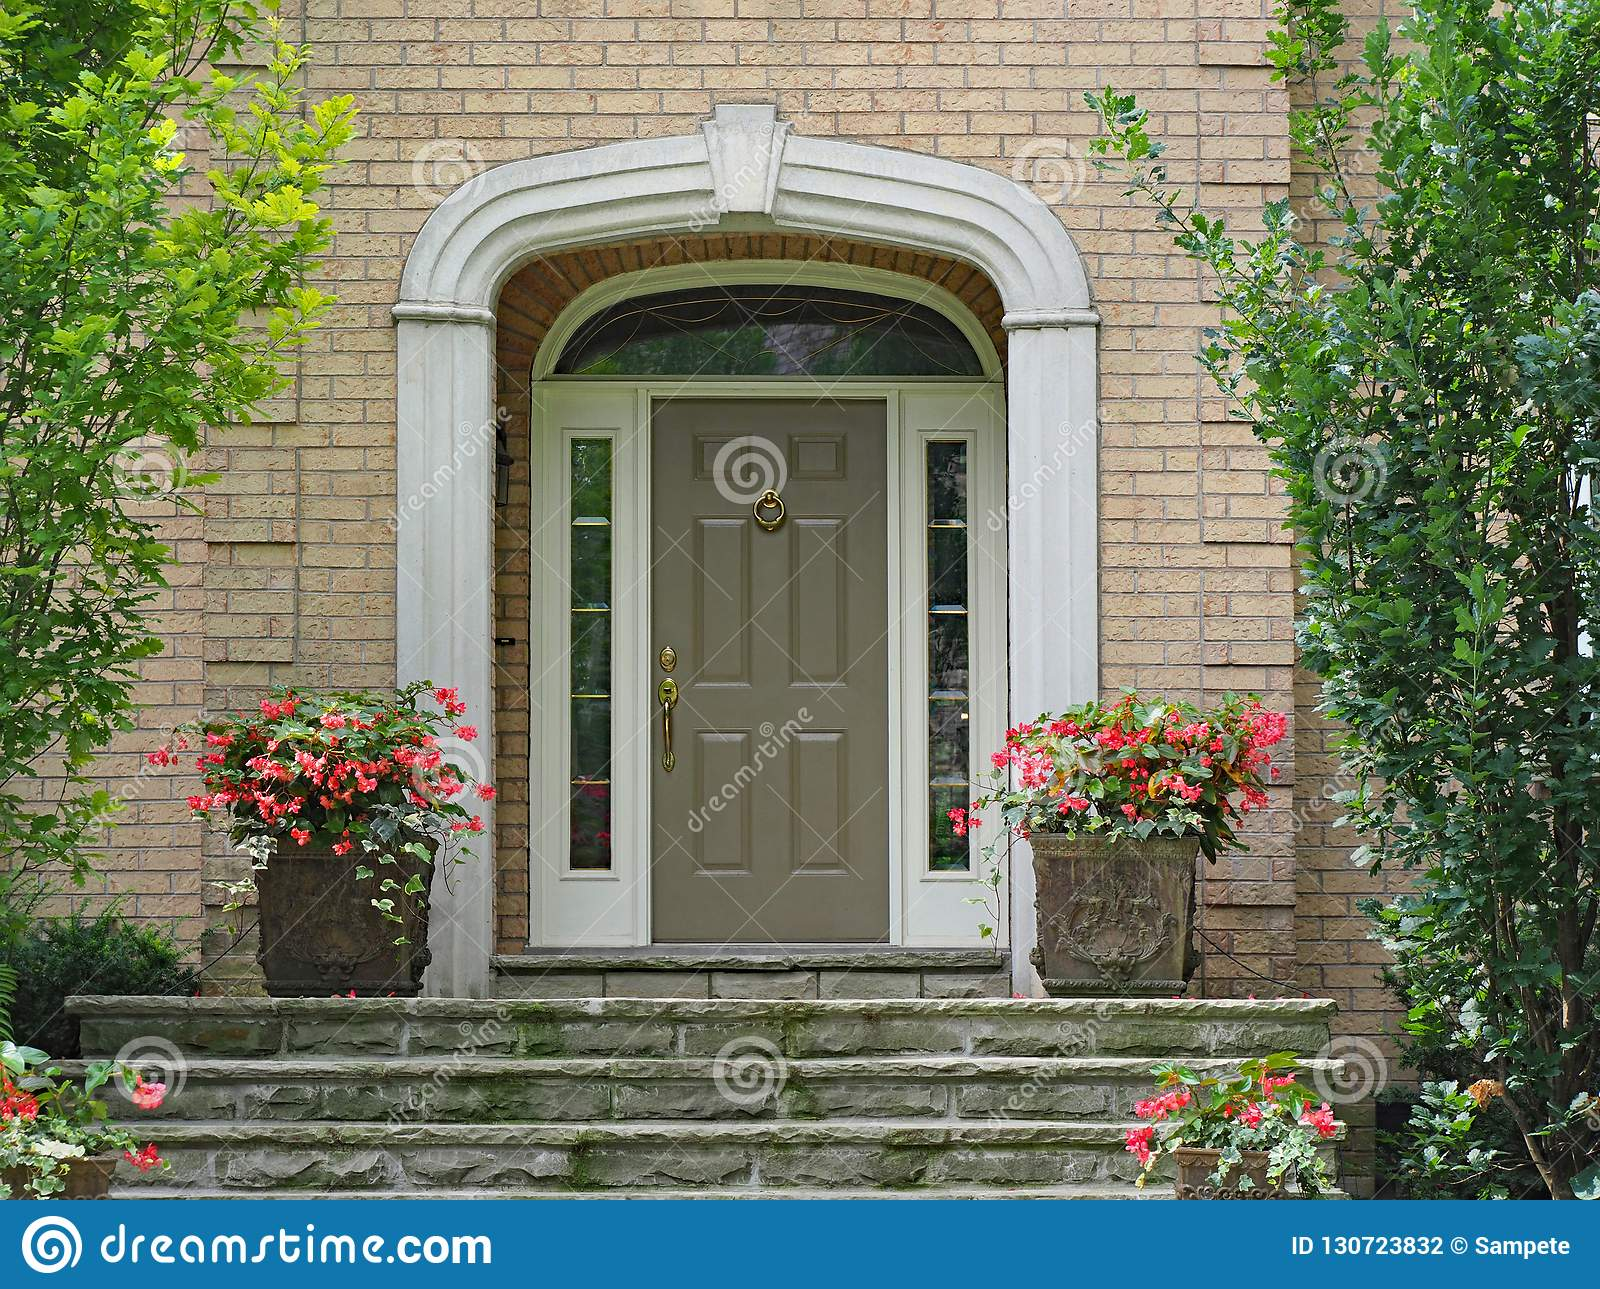 Front Door With Sidelights And Transom Window Stock Photo